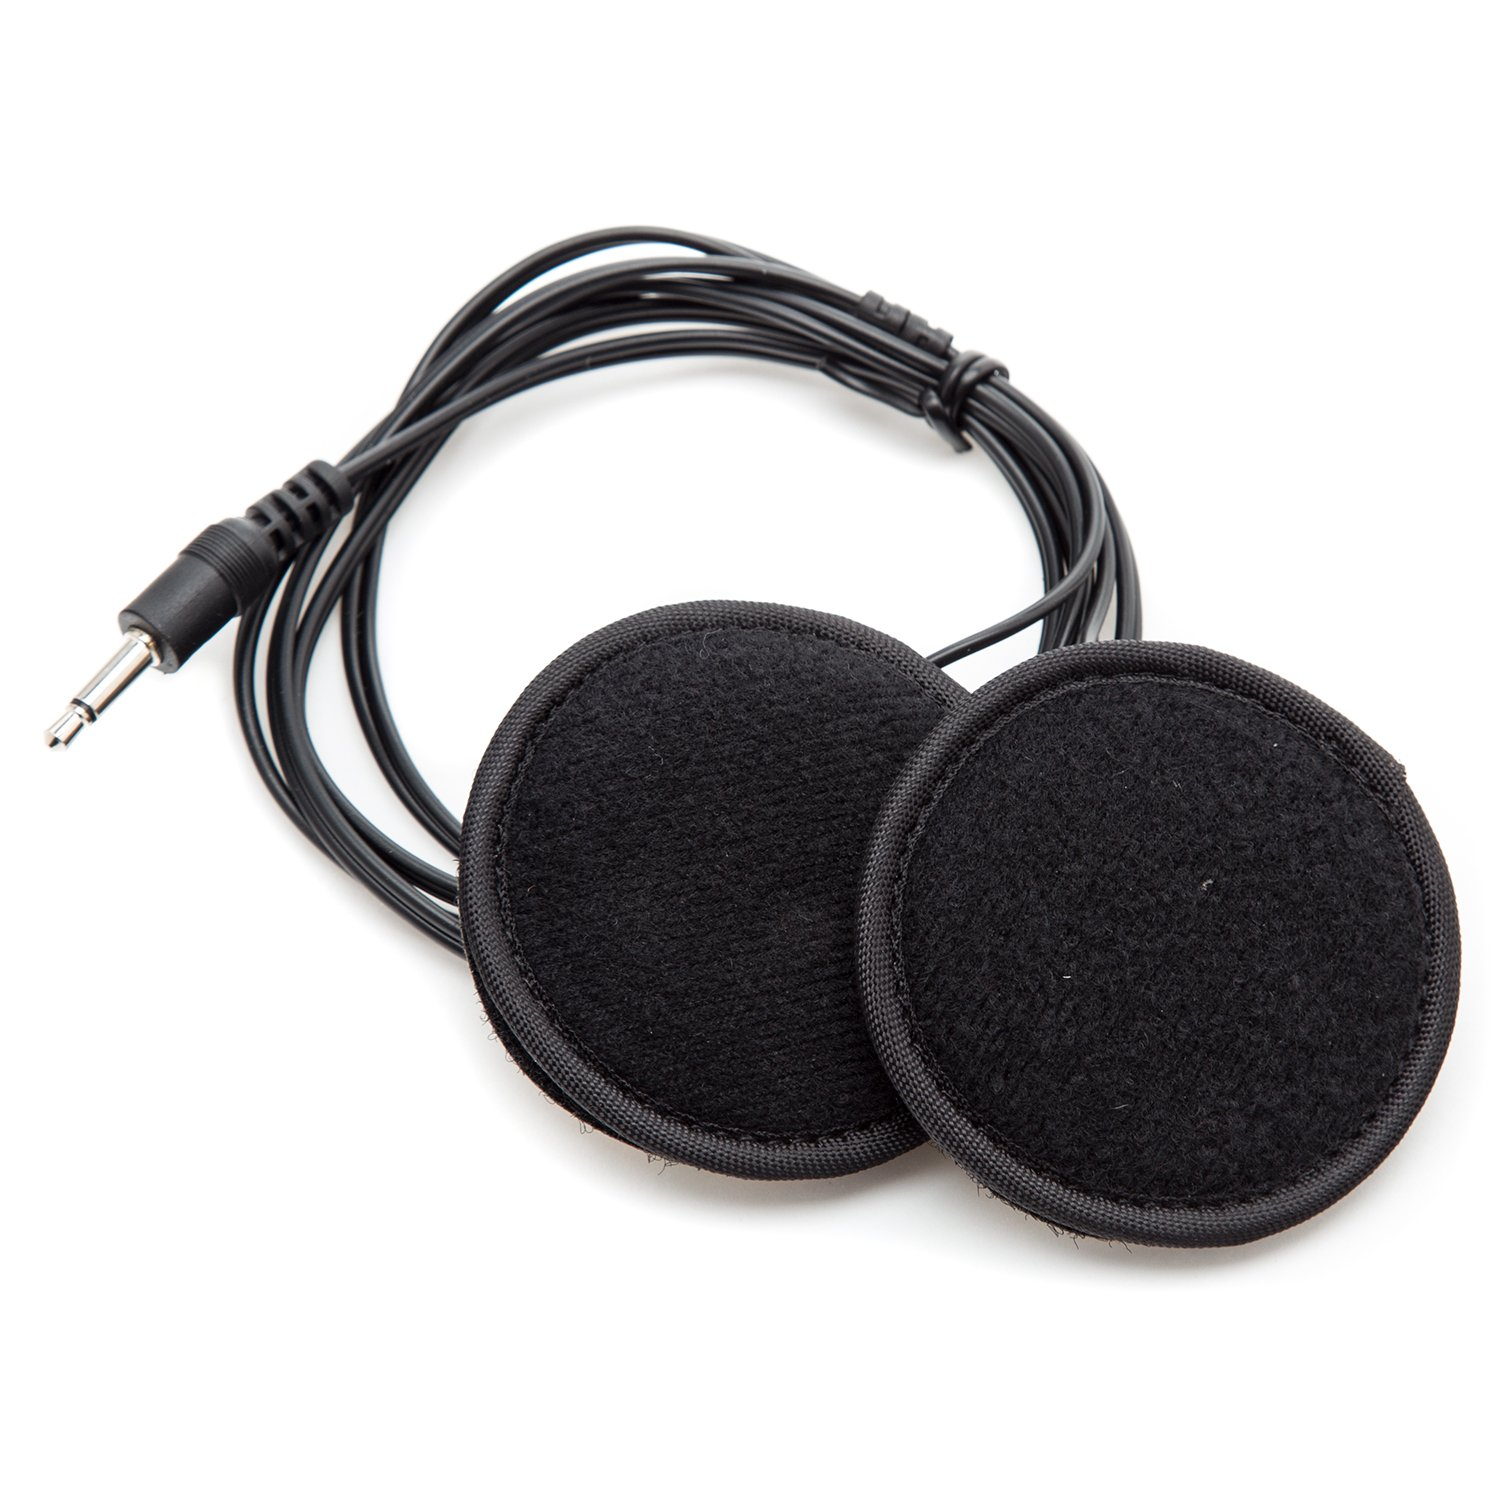 Race City Radios Mono Helmet Speaker Kit with 3.5mm Male Connector